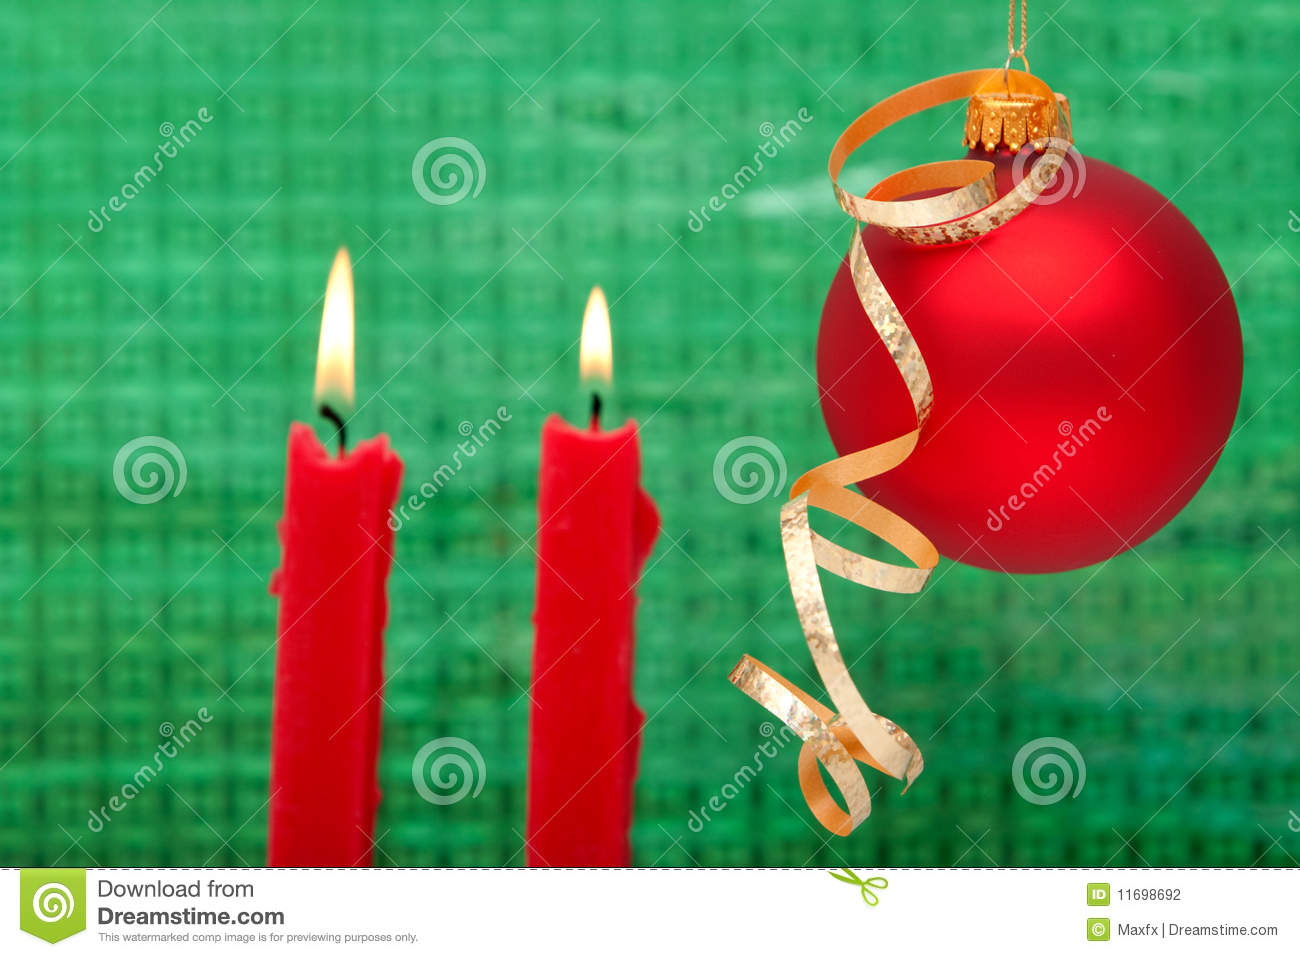 Christmas candle and ornament stock photography image for Christmas candles and ornaments